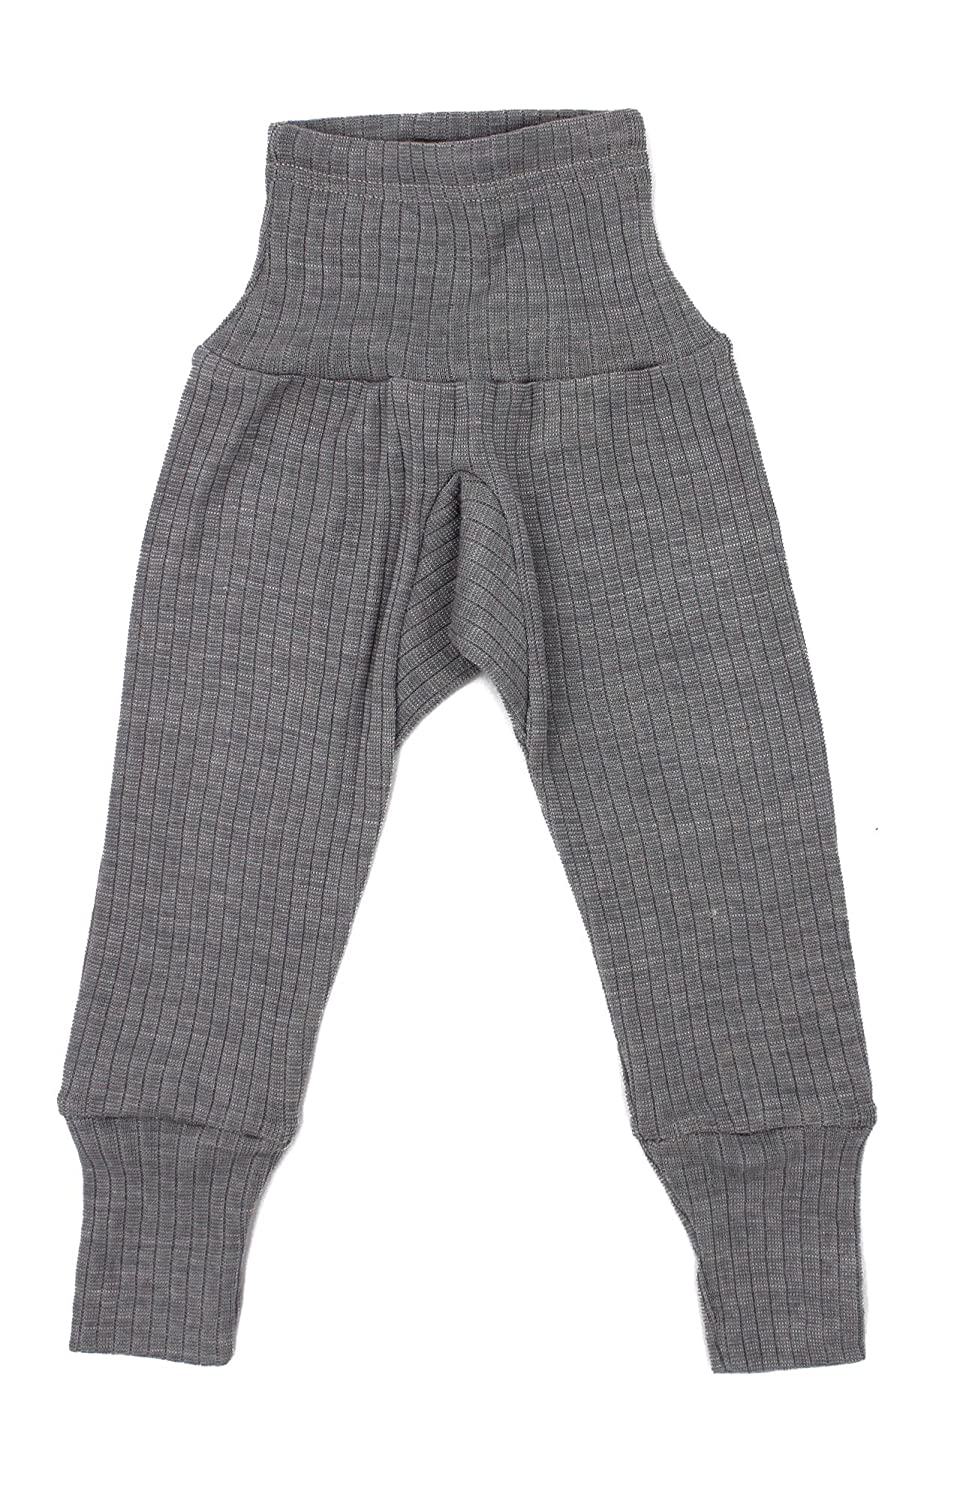 Cosilana Wollbody® Baby Trousers Special Quality 45% kbA Cotton, 35% kbT Wool, 20% Silk